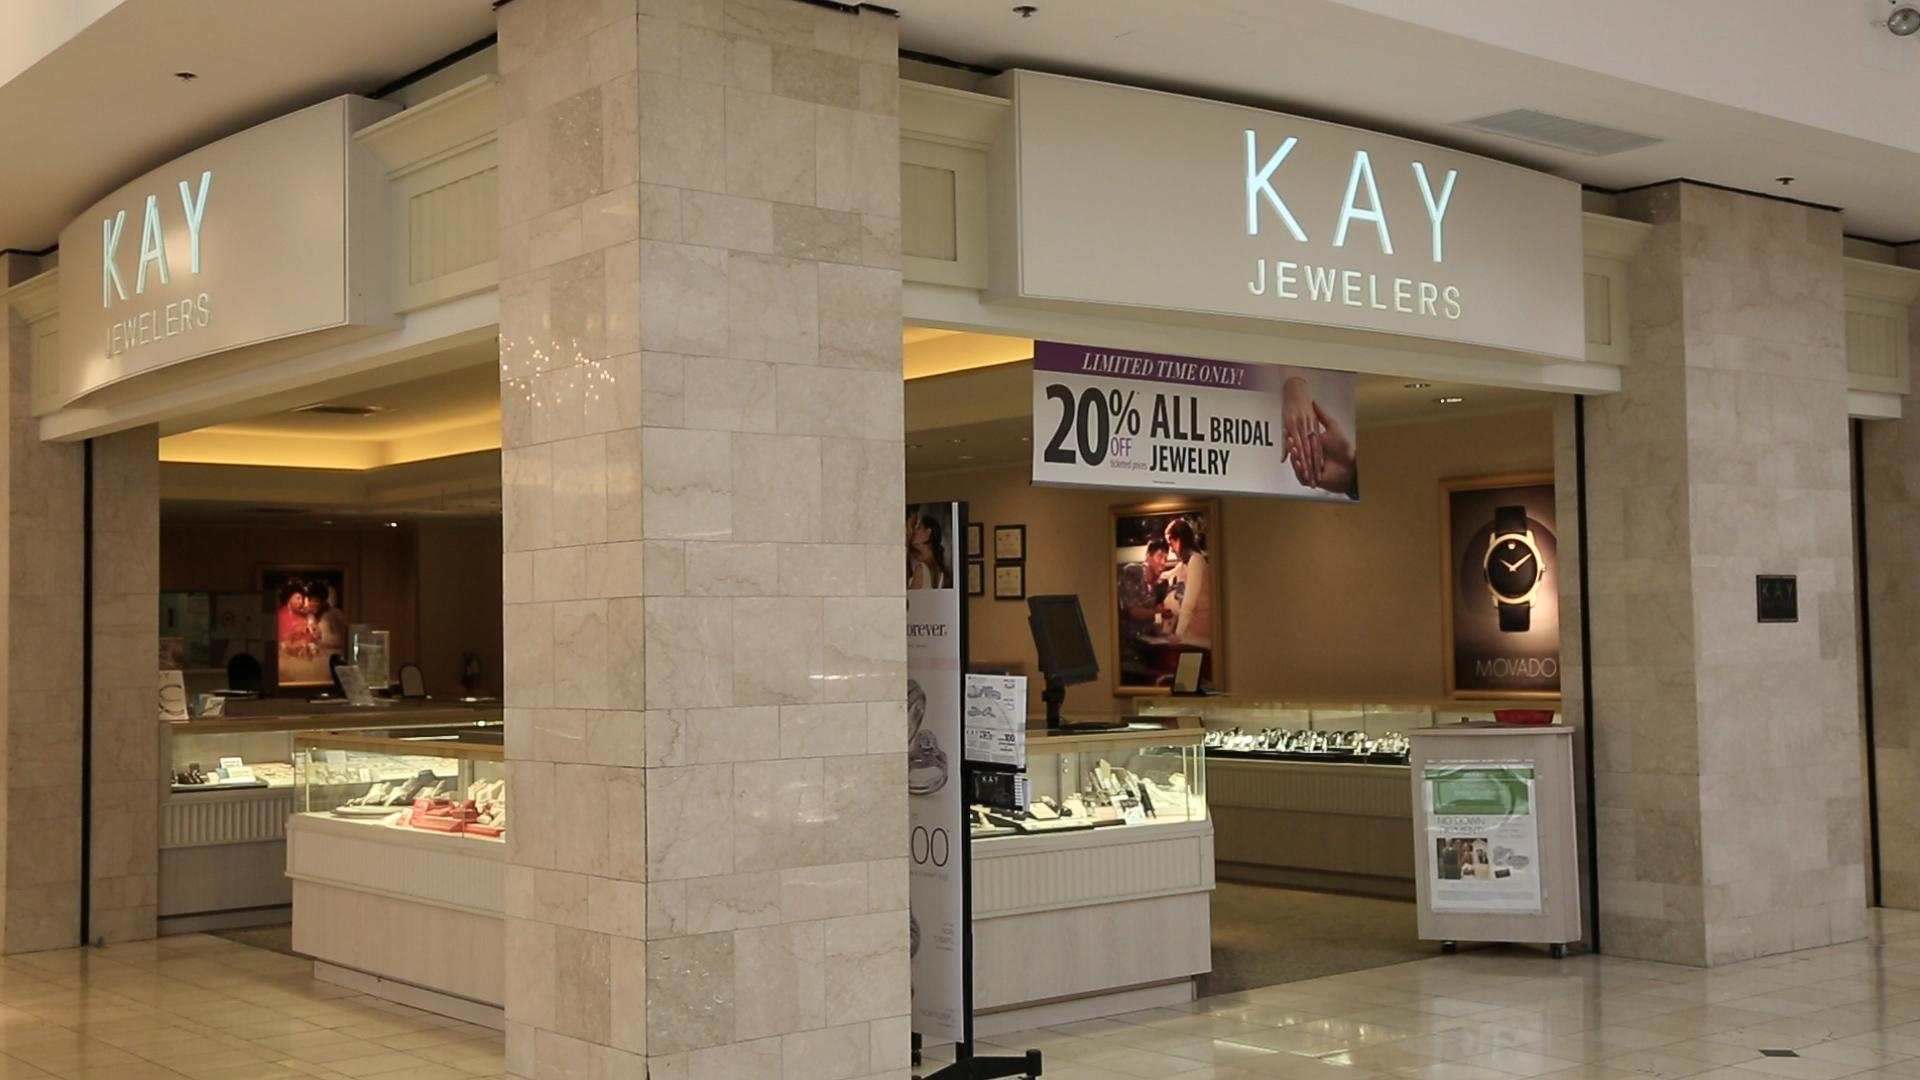 Sterling jewelry, parent company of Kay and Jared jewelry stores, faces sexual harassment lawsuit